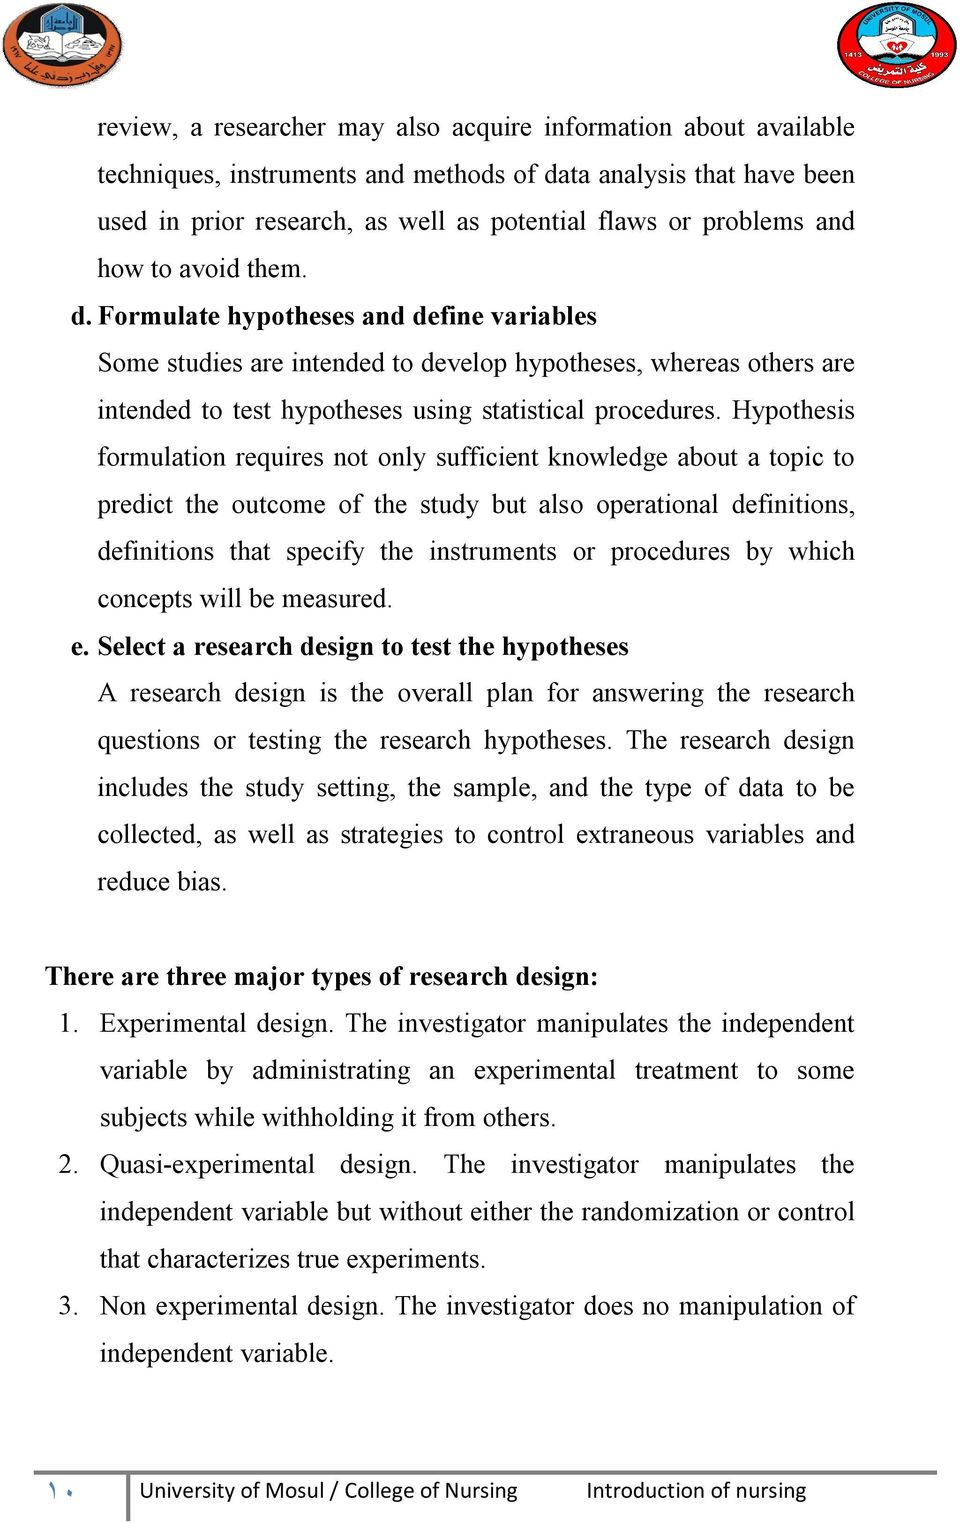 Hypothesis formulation requires not only sufficient knowledge about a topic to predict the outcome of the study but also operational definitions, definitions that specify the instruments or